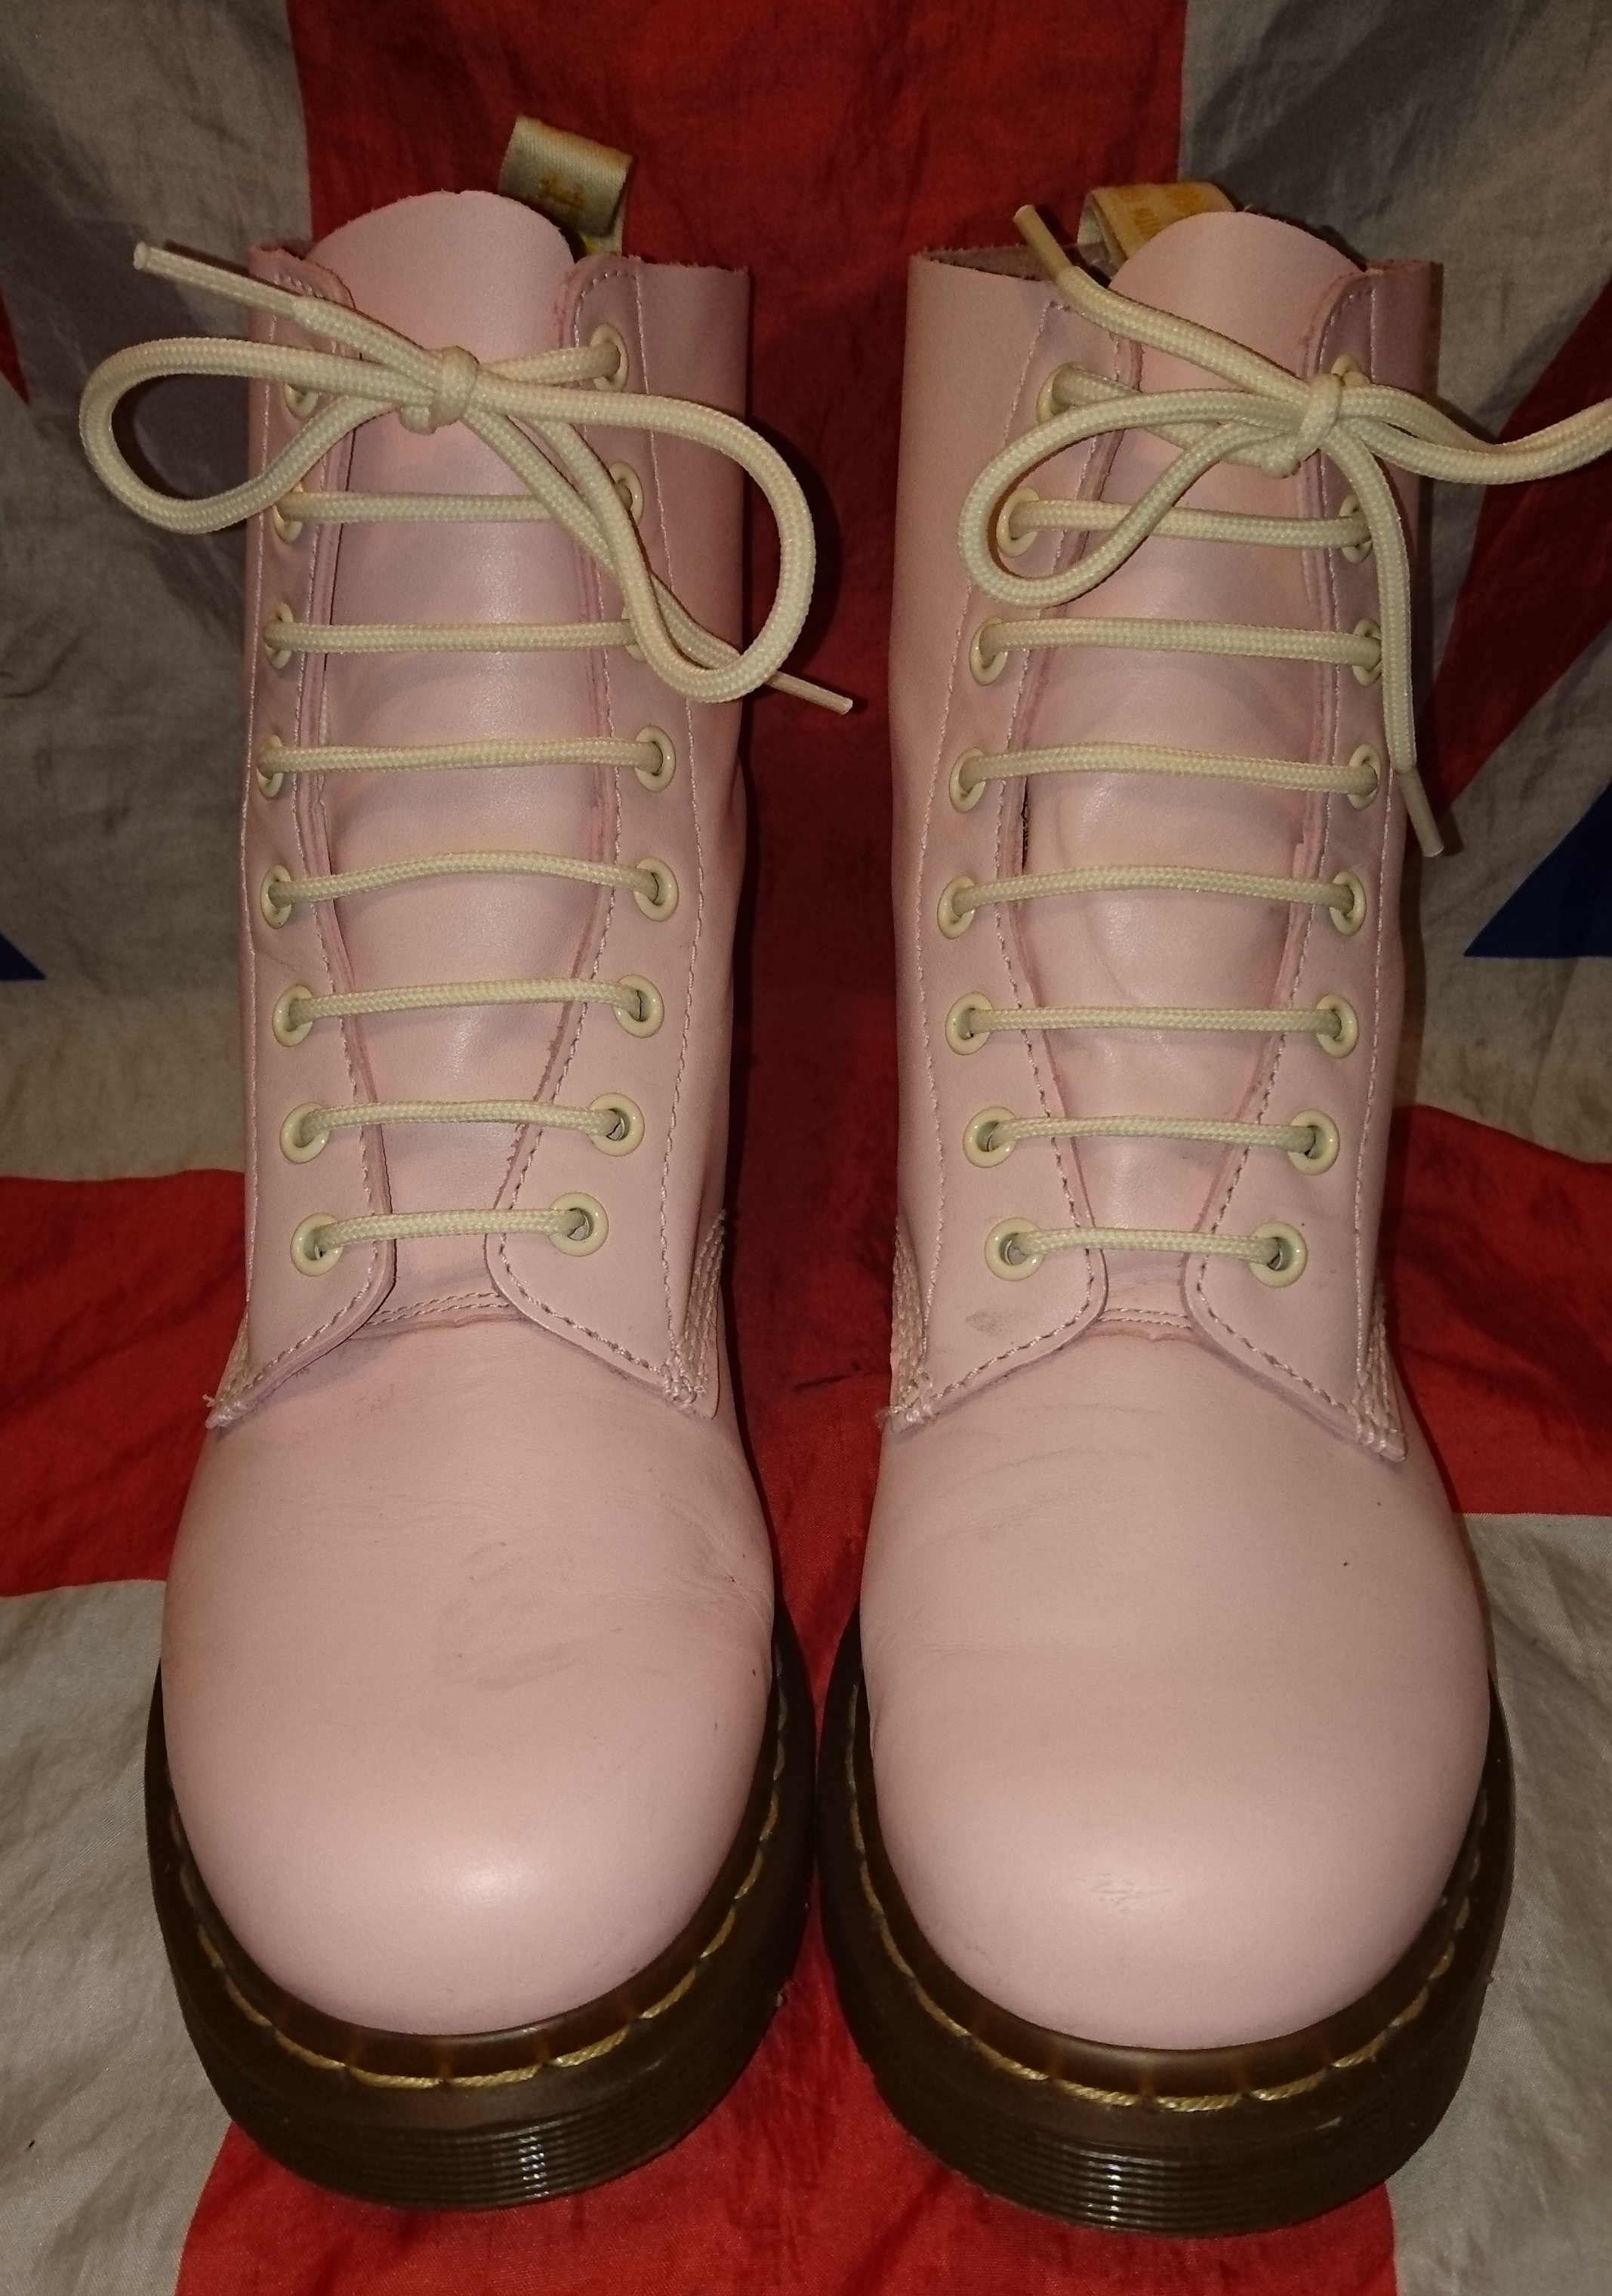 8a1abffb0f4 RARE - Pascal - Baby Pastel Pink Cream Patent Leather Dr Doc Martens ...